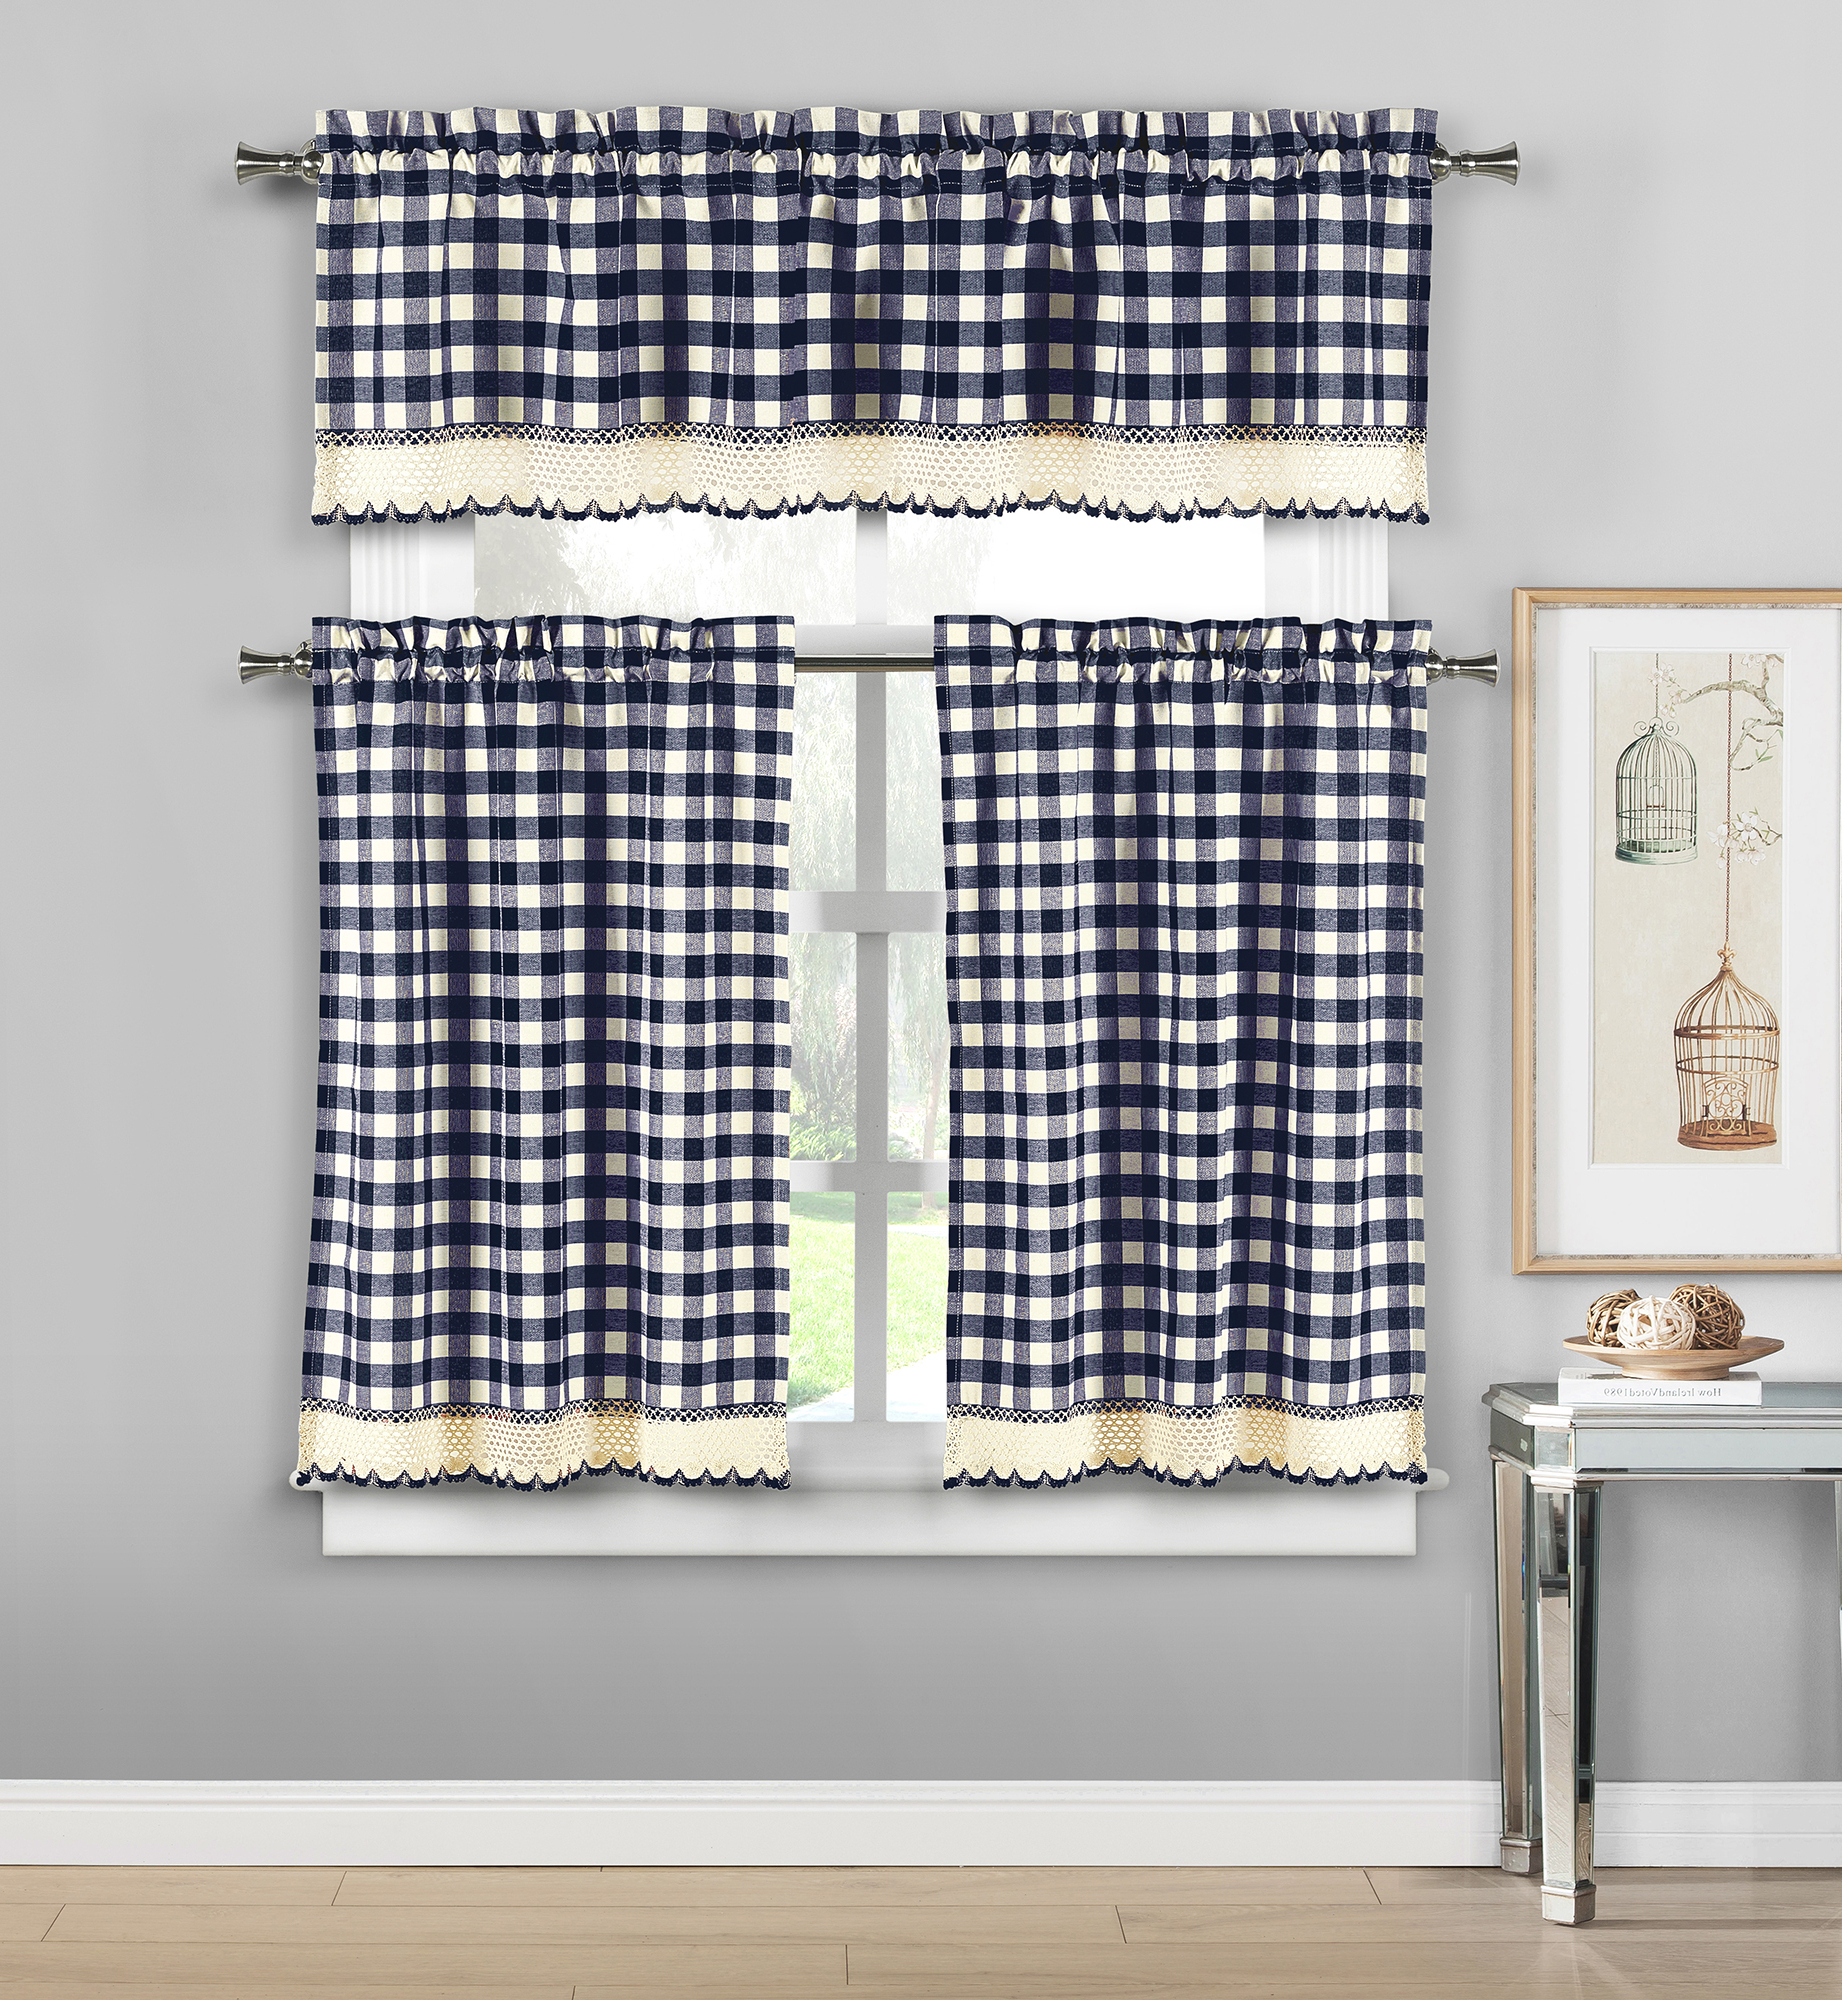 Current Details About Plaid Checkered Crochet Cotton Blend 3Pc Window Curtain Kitchen Tier & Valance Throughout Lodge Plaid 3 Piece Kitchen Curtain Tier And Valance Sets (View 5 of 20)